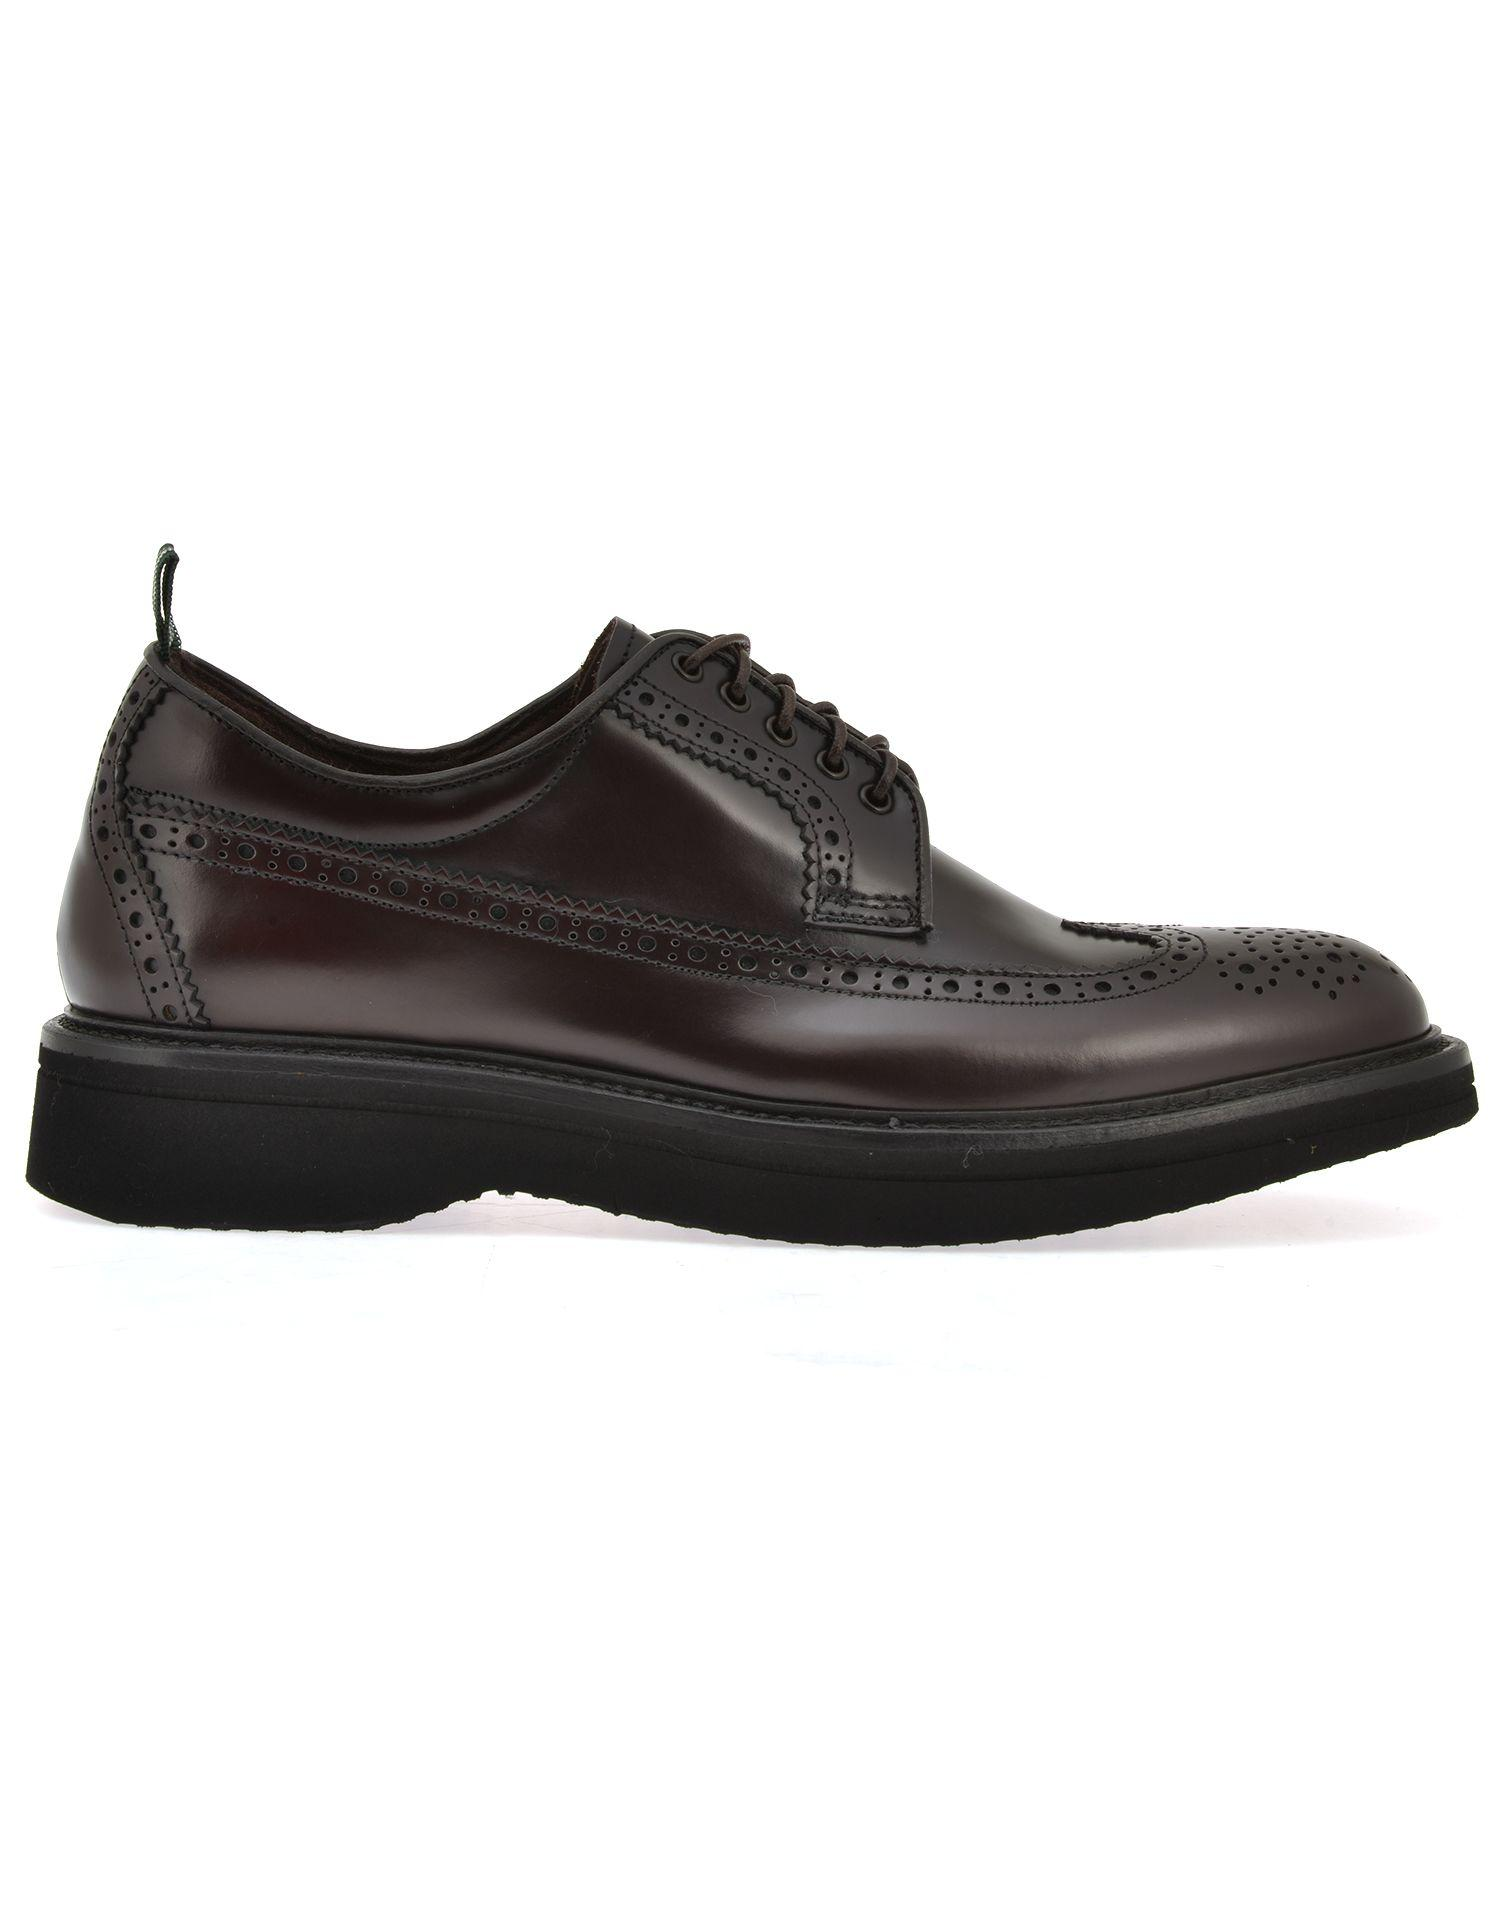 Green George Leather Lace Up Shoe In Burgundy